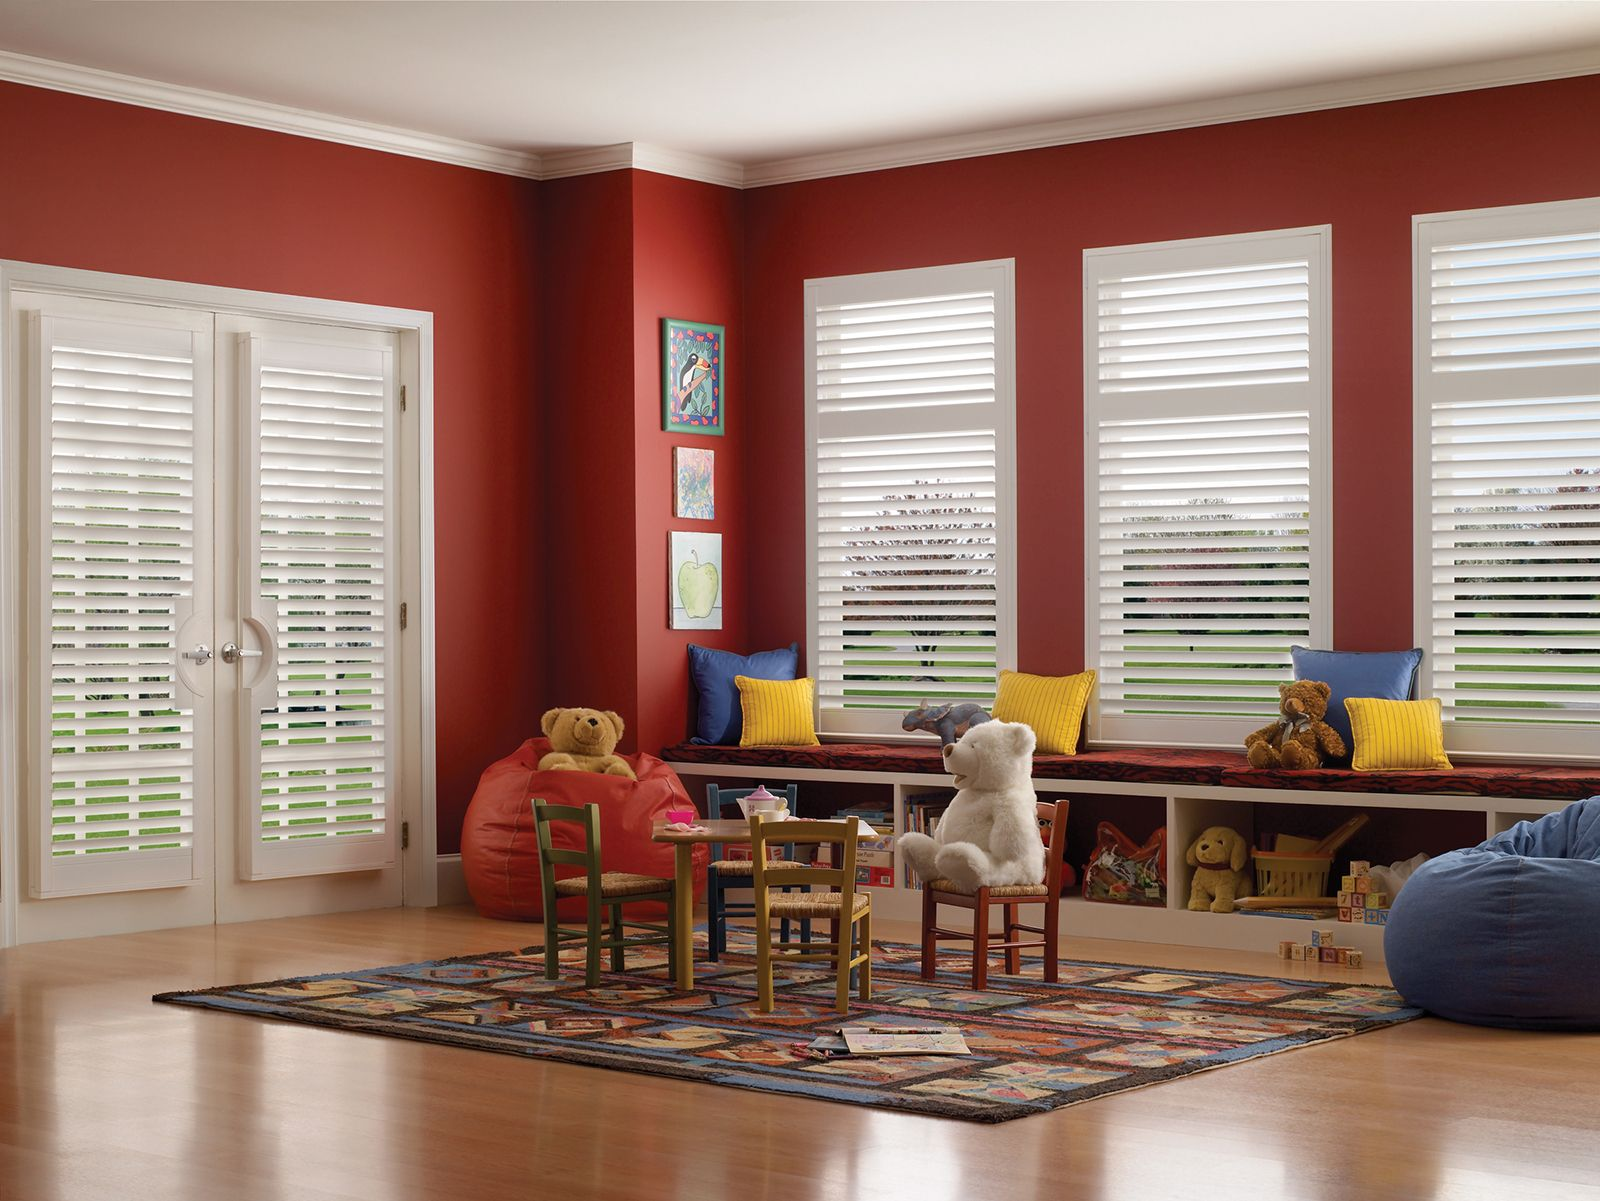 Cotton • 2½ inch louver • French Door Cut-out • Divider Rail • UltraClearview® hidden rear tilt